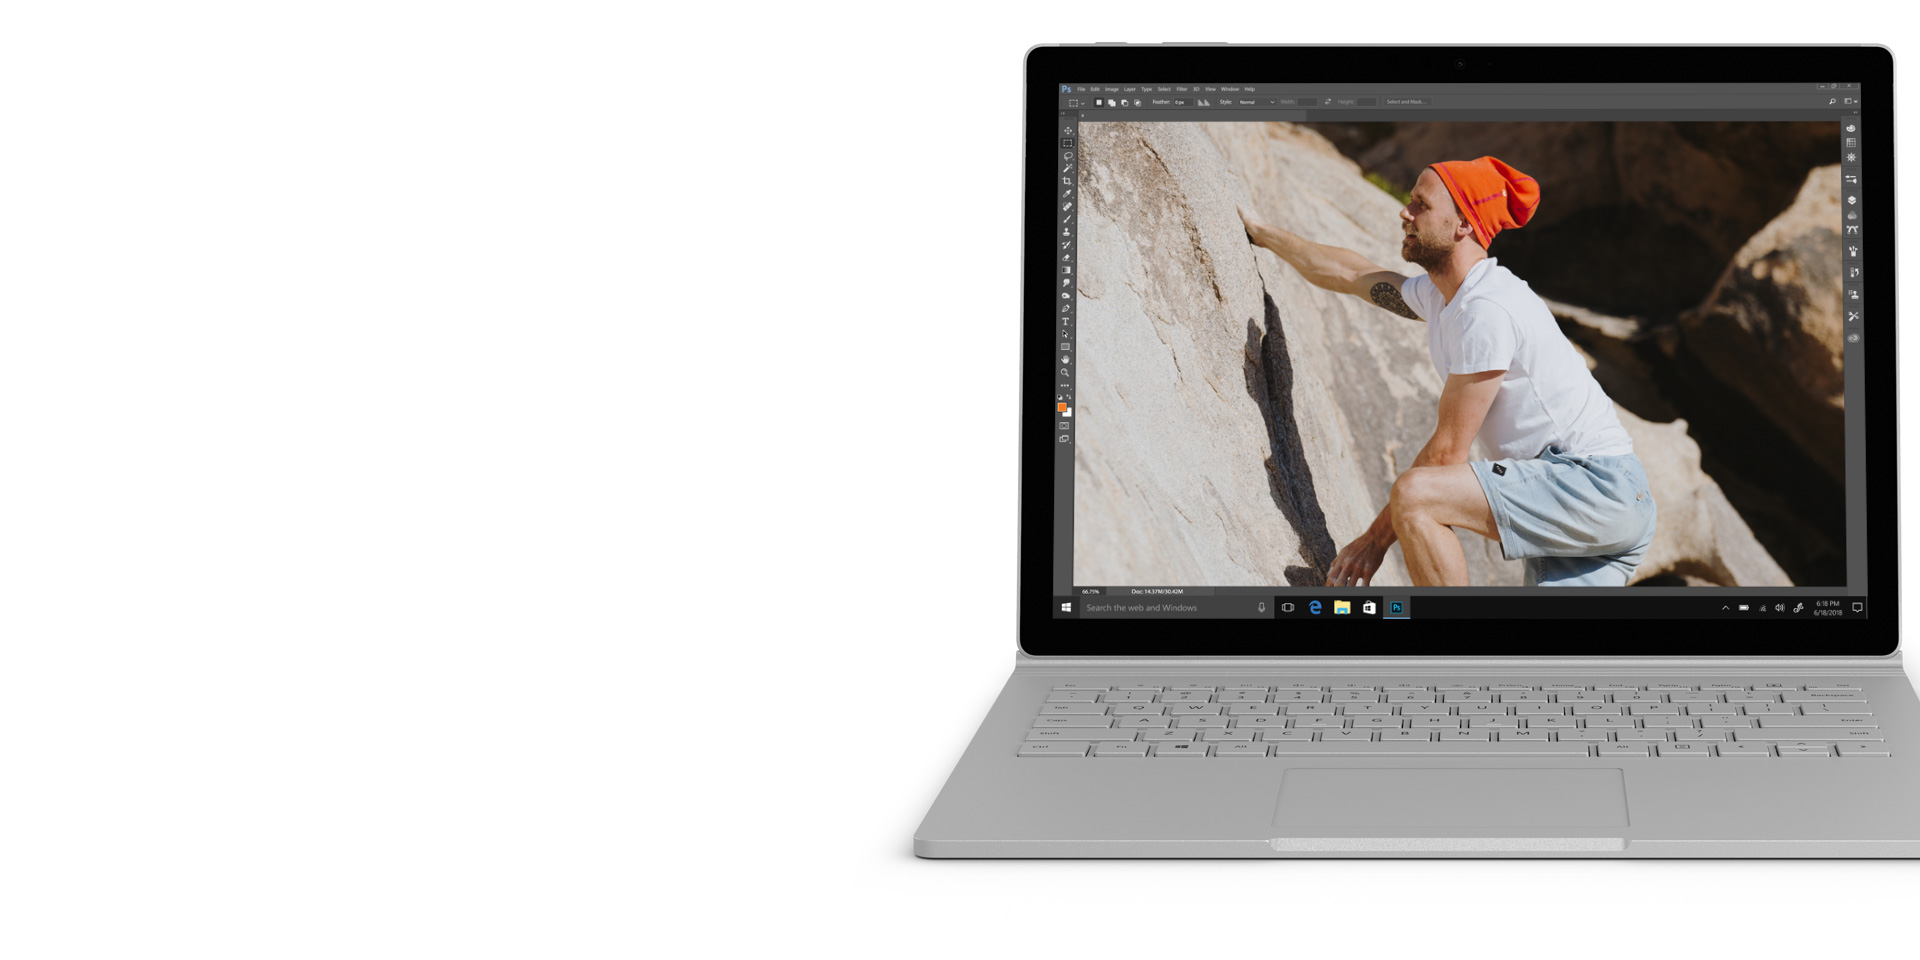 Adobe Photoshop sullo schermo di un dispositivo Surface Book 2